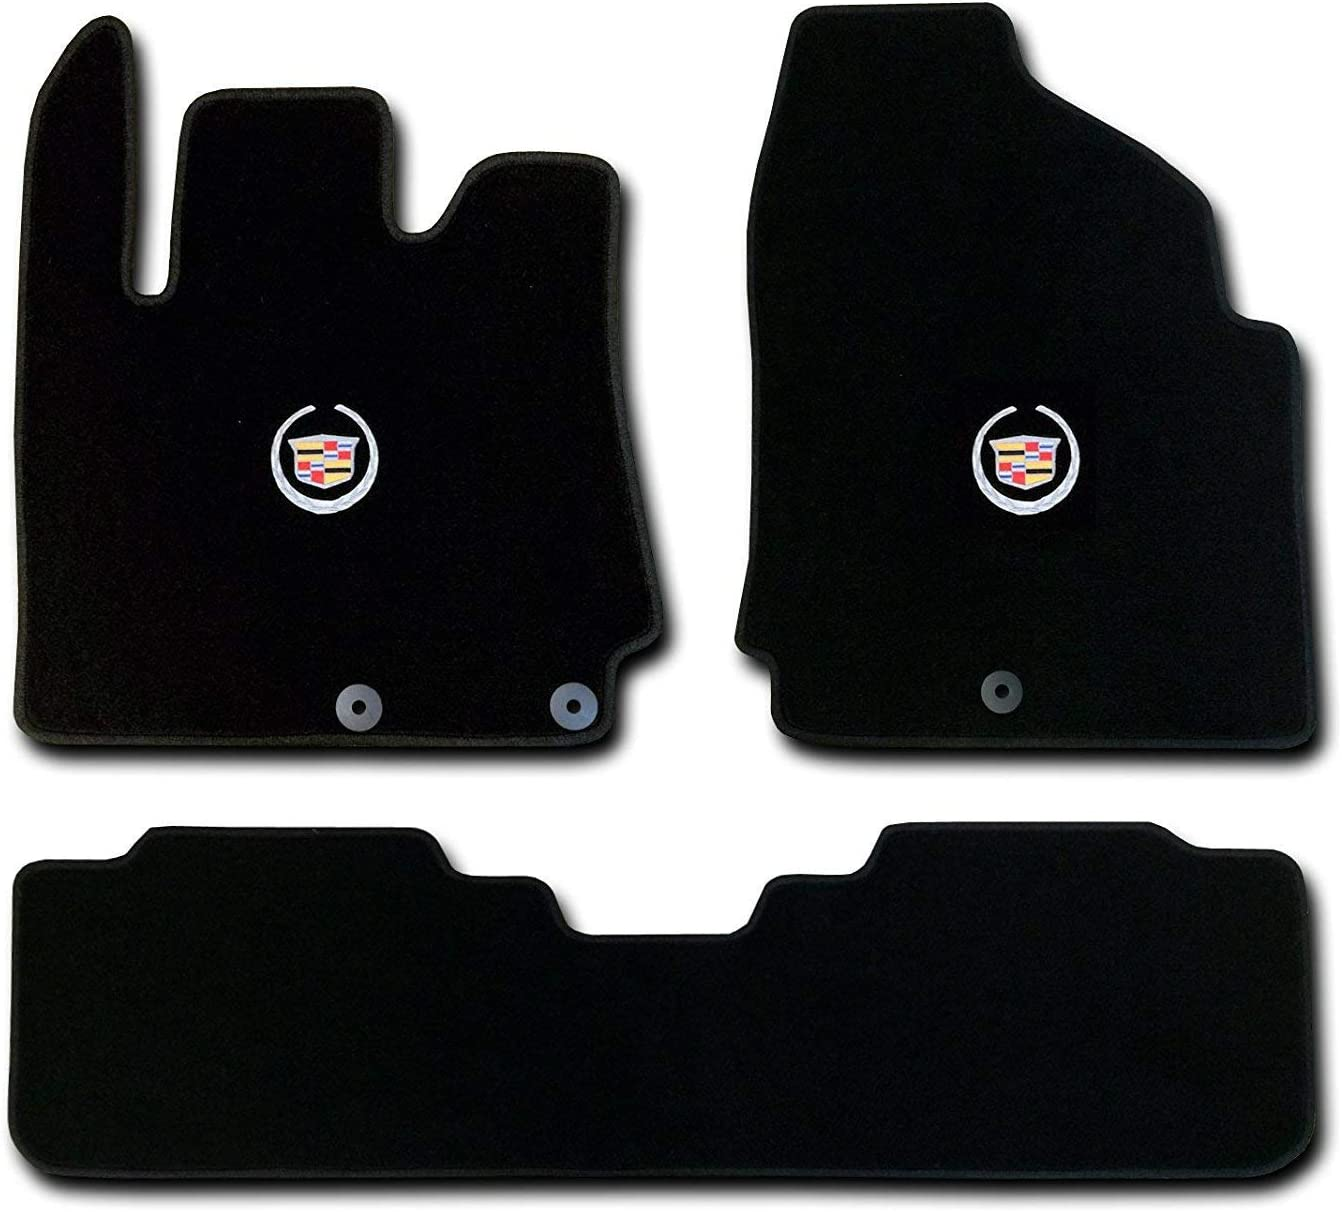 Avery's Floor Mats Part Compatible with Cadillac SRX 3 Pc (2 Fronts / Rear Runner) Black Custom Fit Carpet Set with Licensed Cadillac Crest Logo on fronts - Fits 2010 11 12 13 14 15